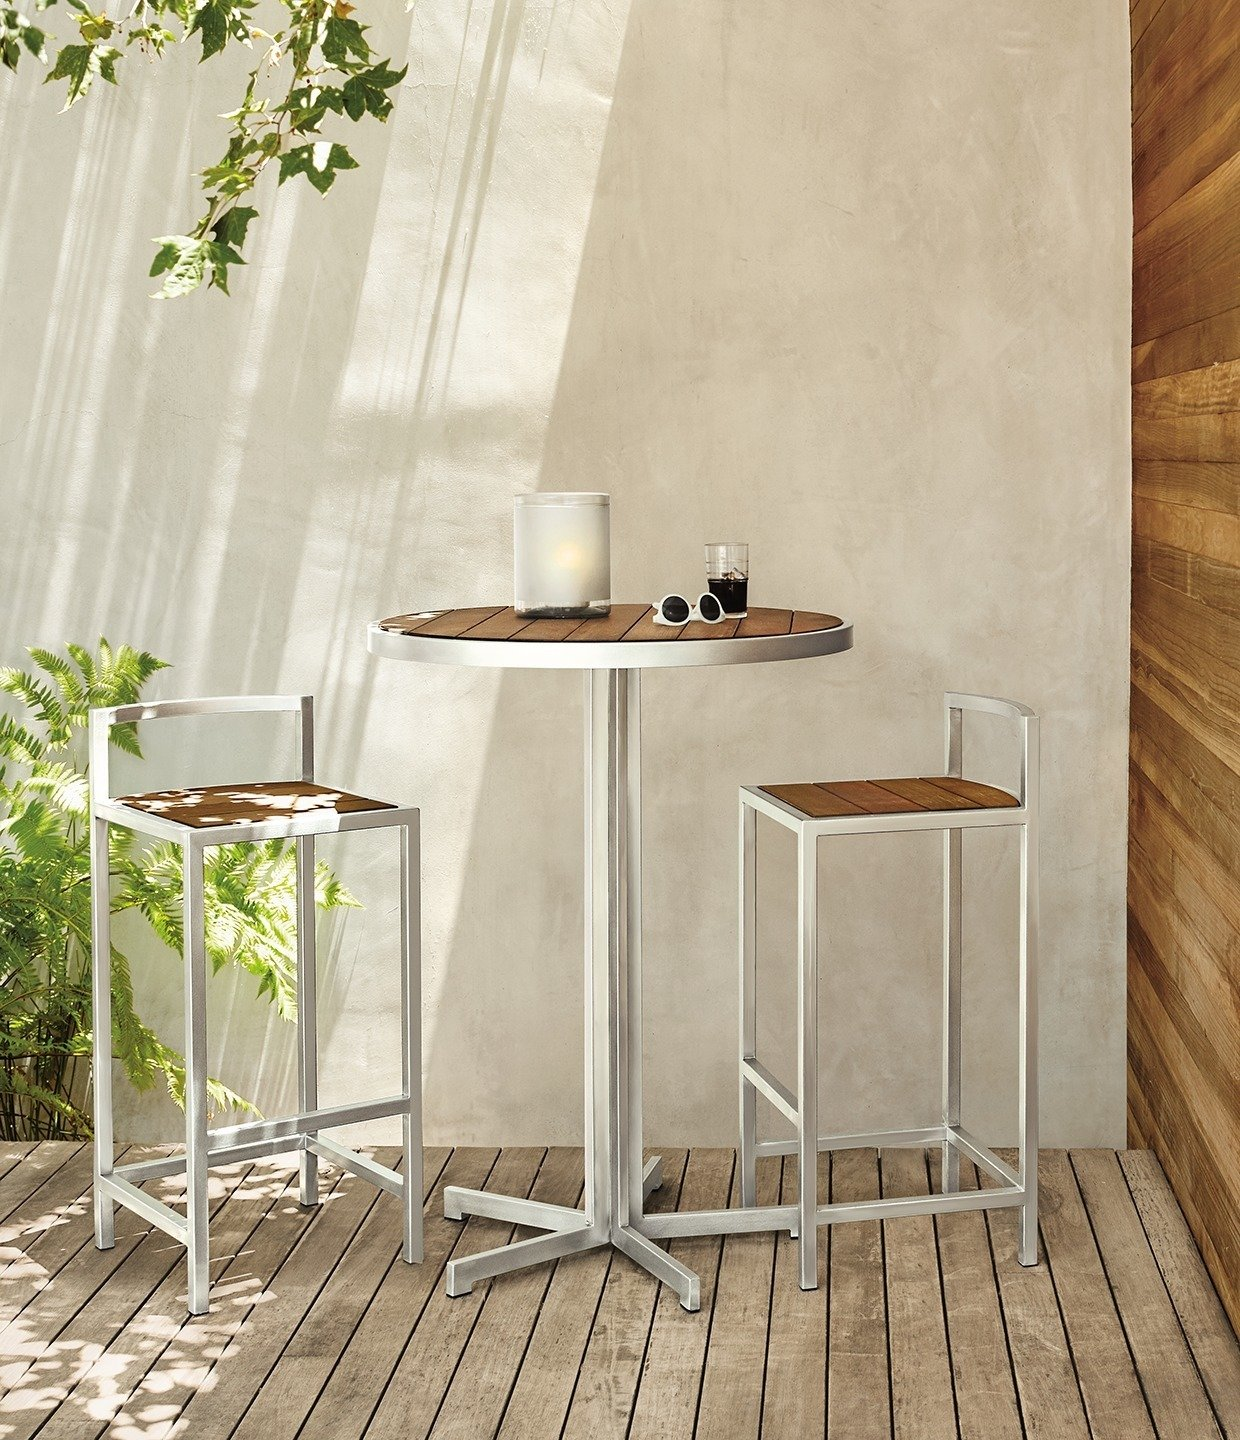 Outdoor and Back Yard Montego round bar table, Montego bar stools  Photo 7 of 8 in Expert Design Advice: Outdoor Dining Spaces